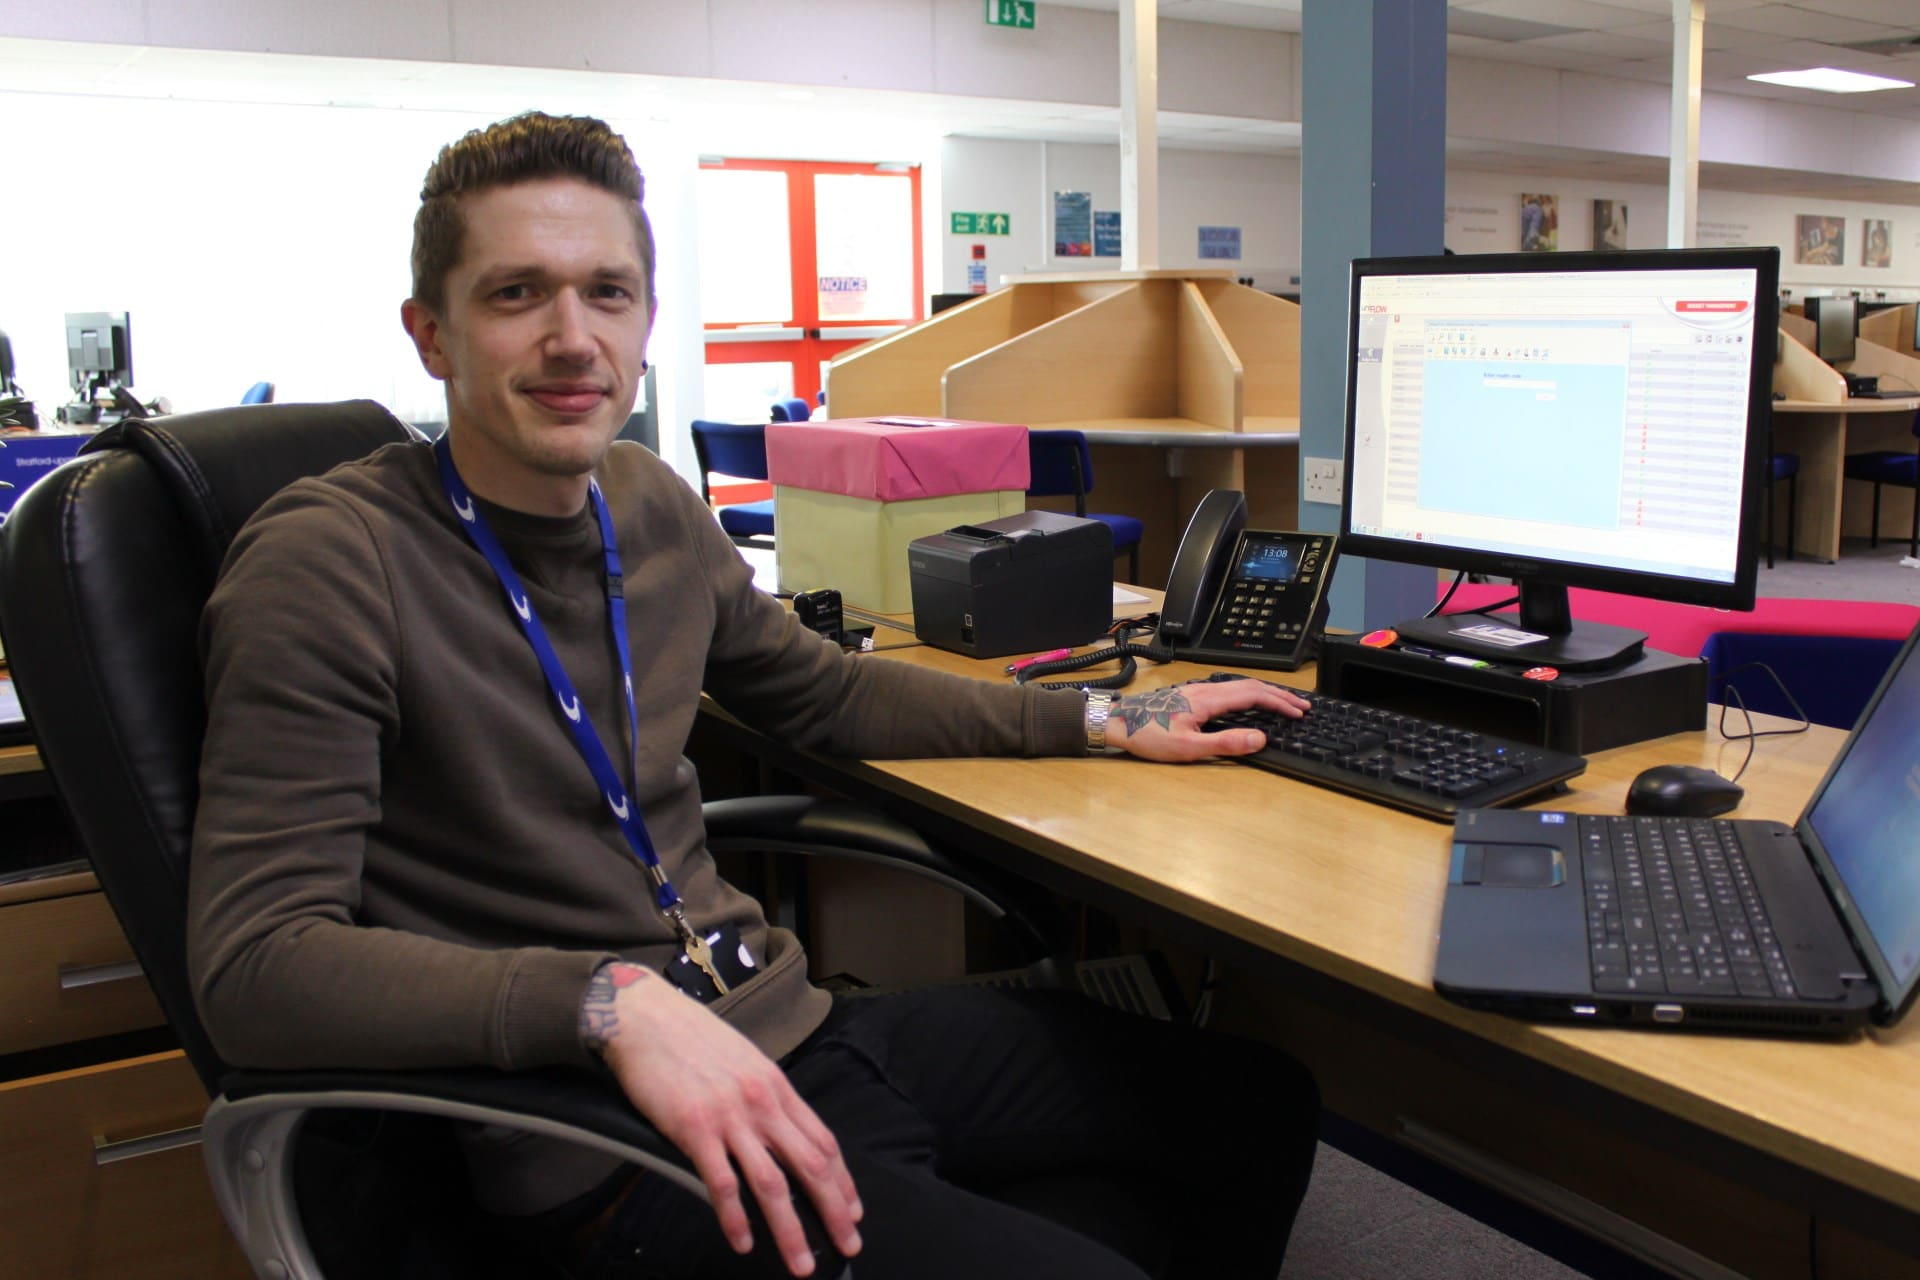 Business Administration Apprentice Martin Dunsby